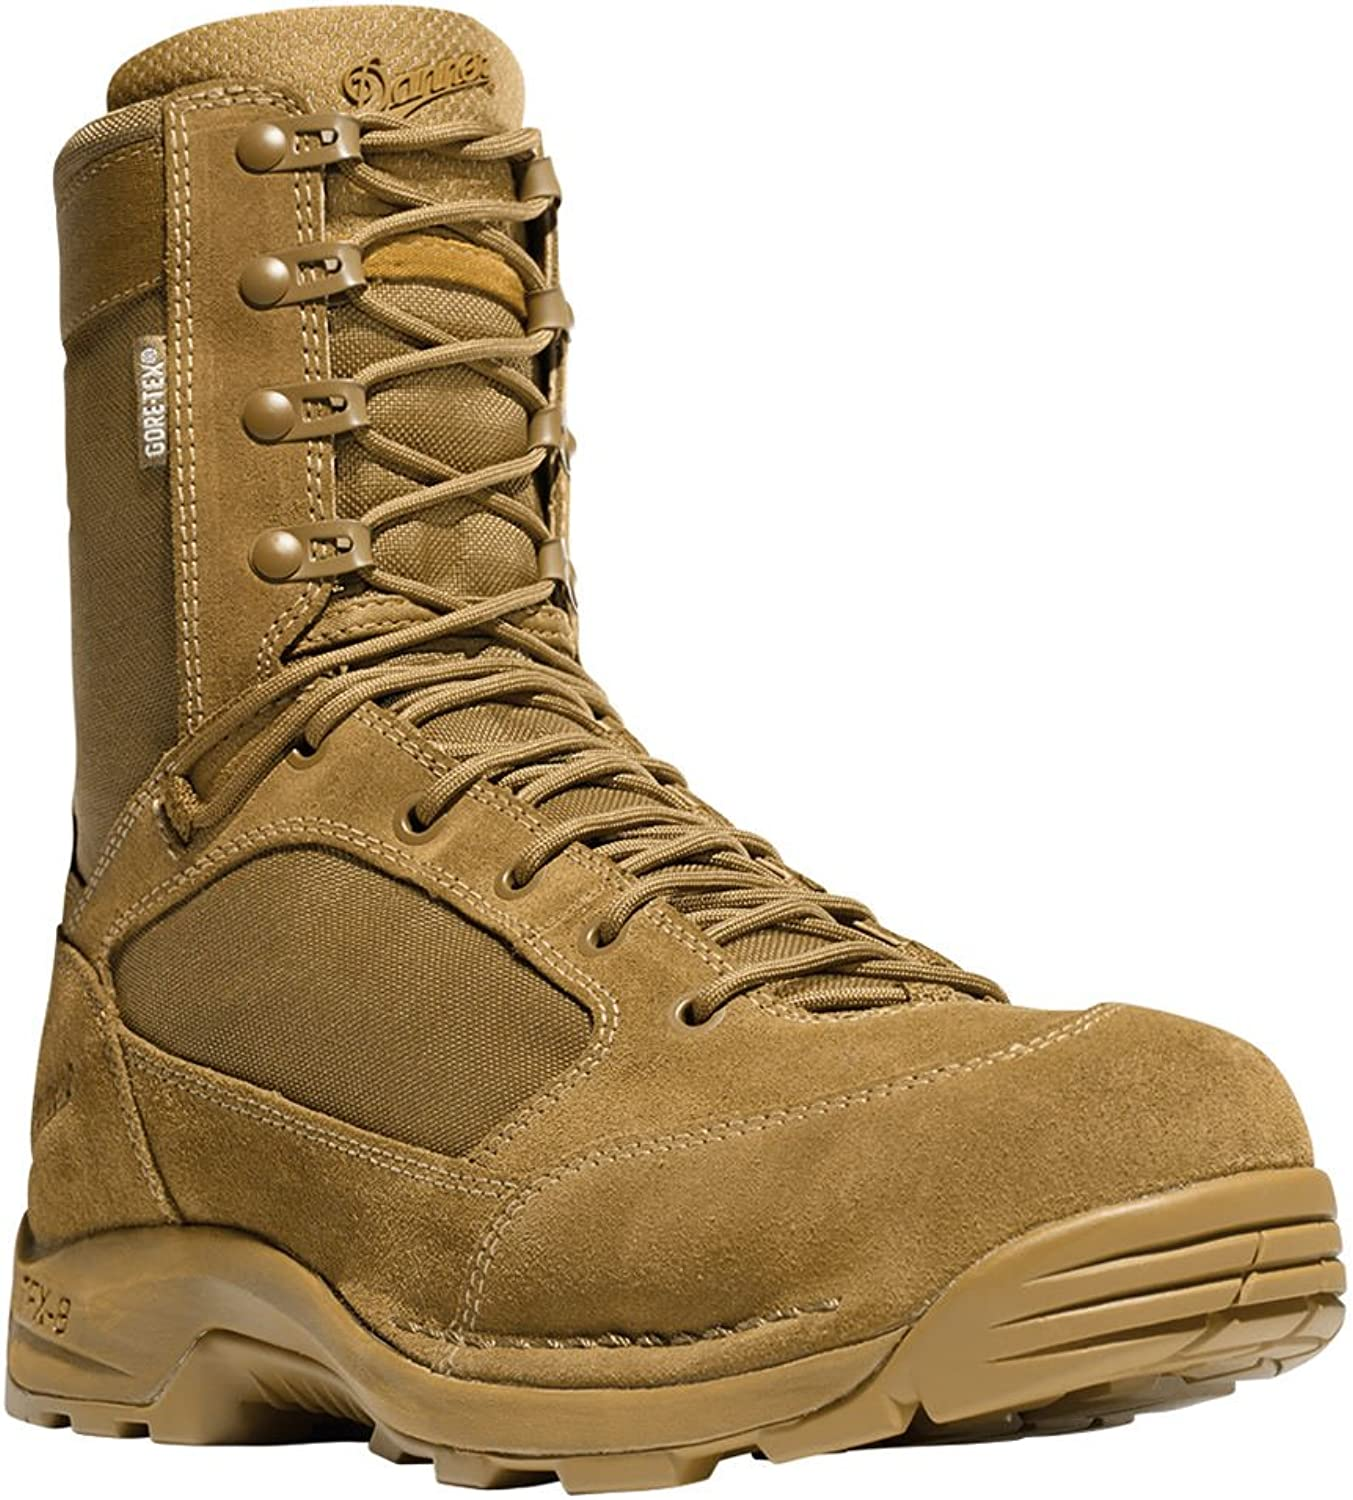 24307 Wste TFX G3 Uniform Stiefel - Tan